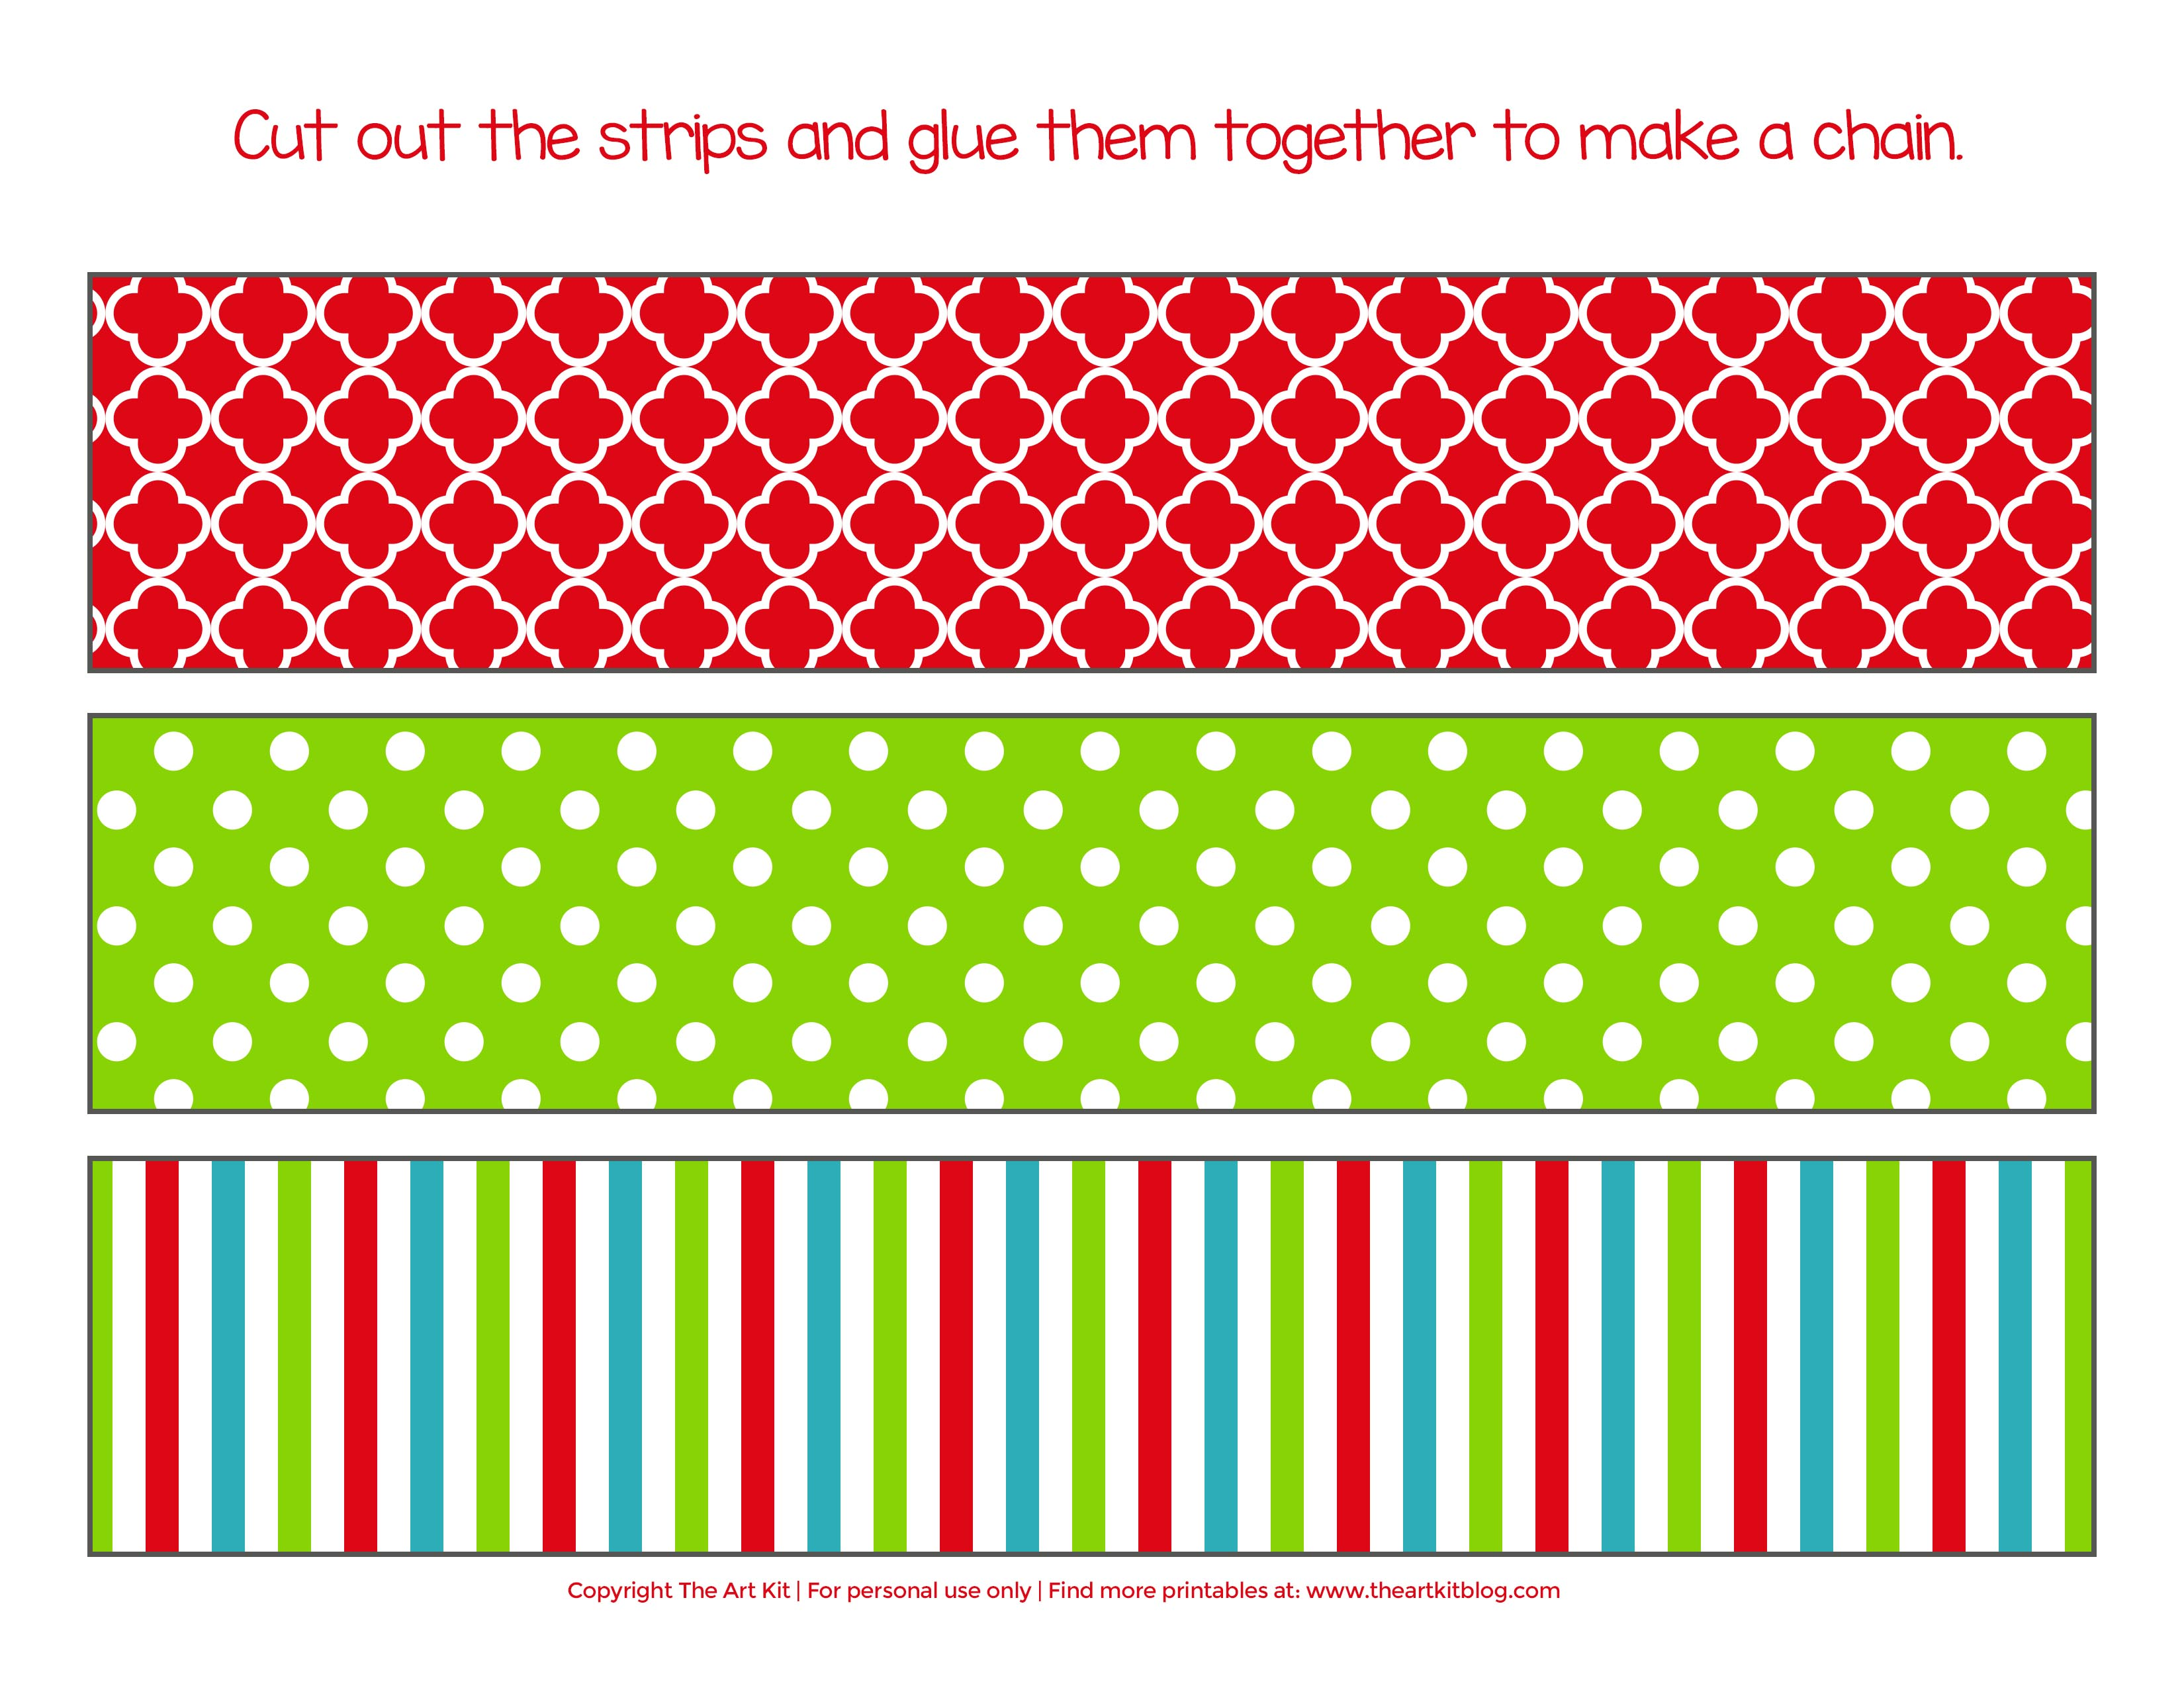 image about Free Printable Christmas Paper identify xmas chain no cost printable the artwork package - The Artwork Package